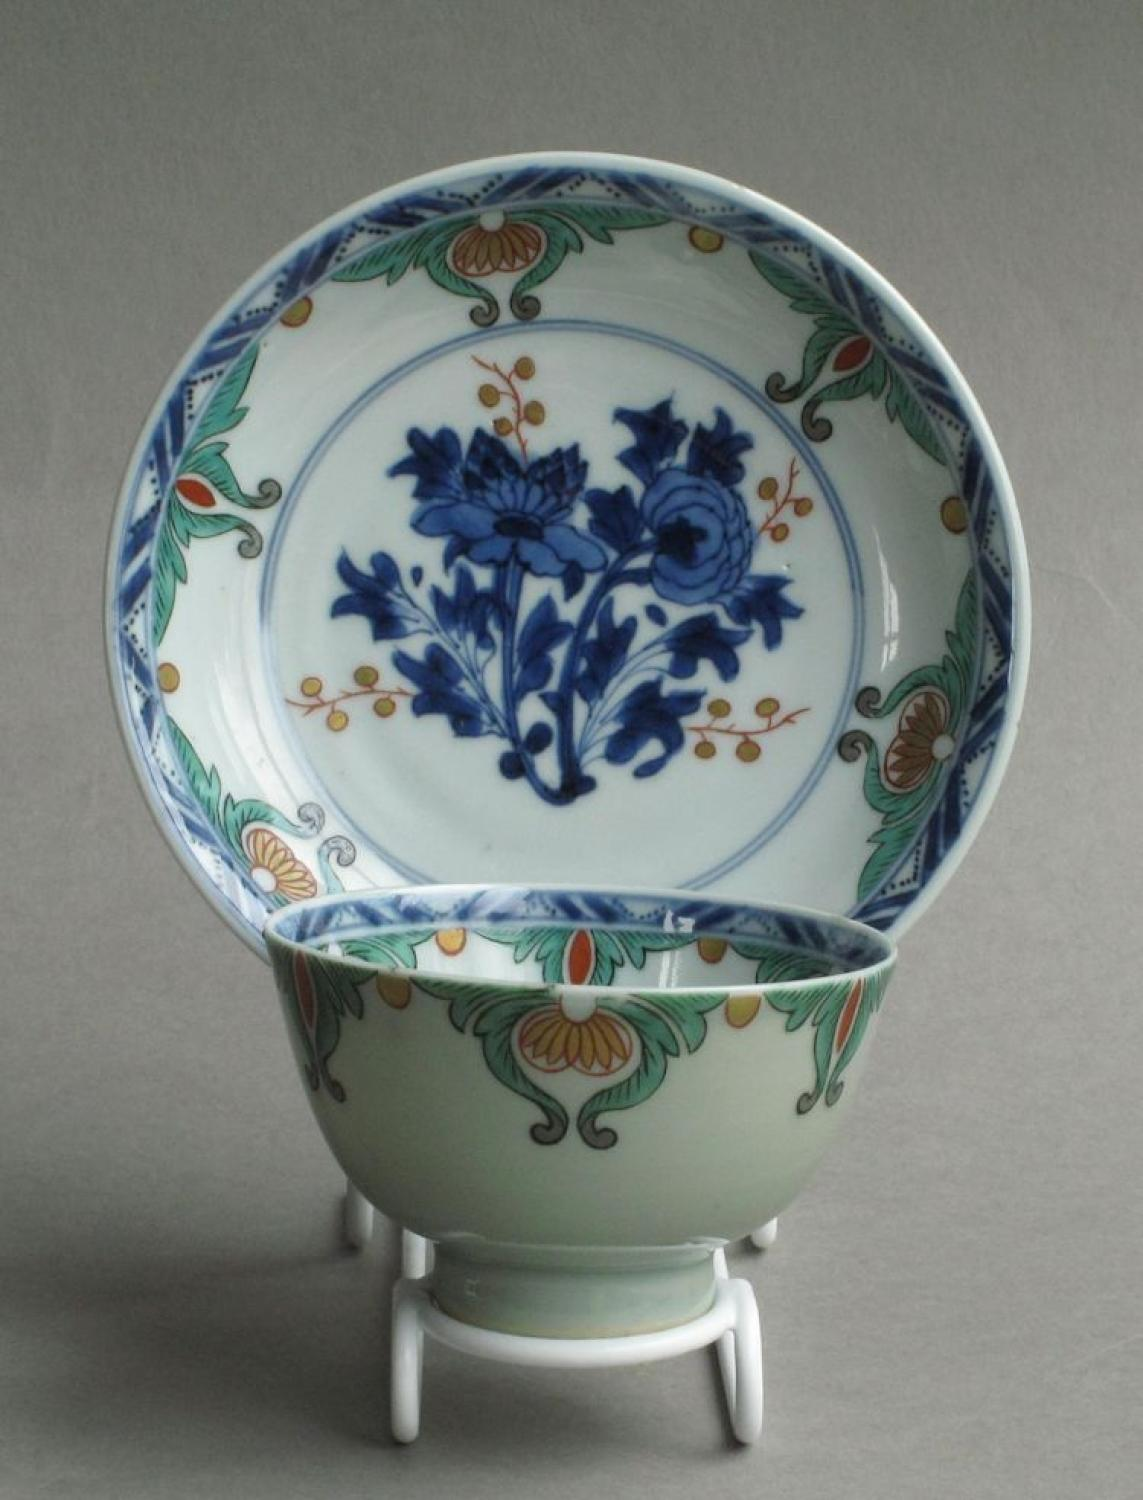 Good Dutch-decorated Kangxi teabowl & saucer